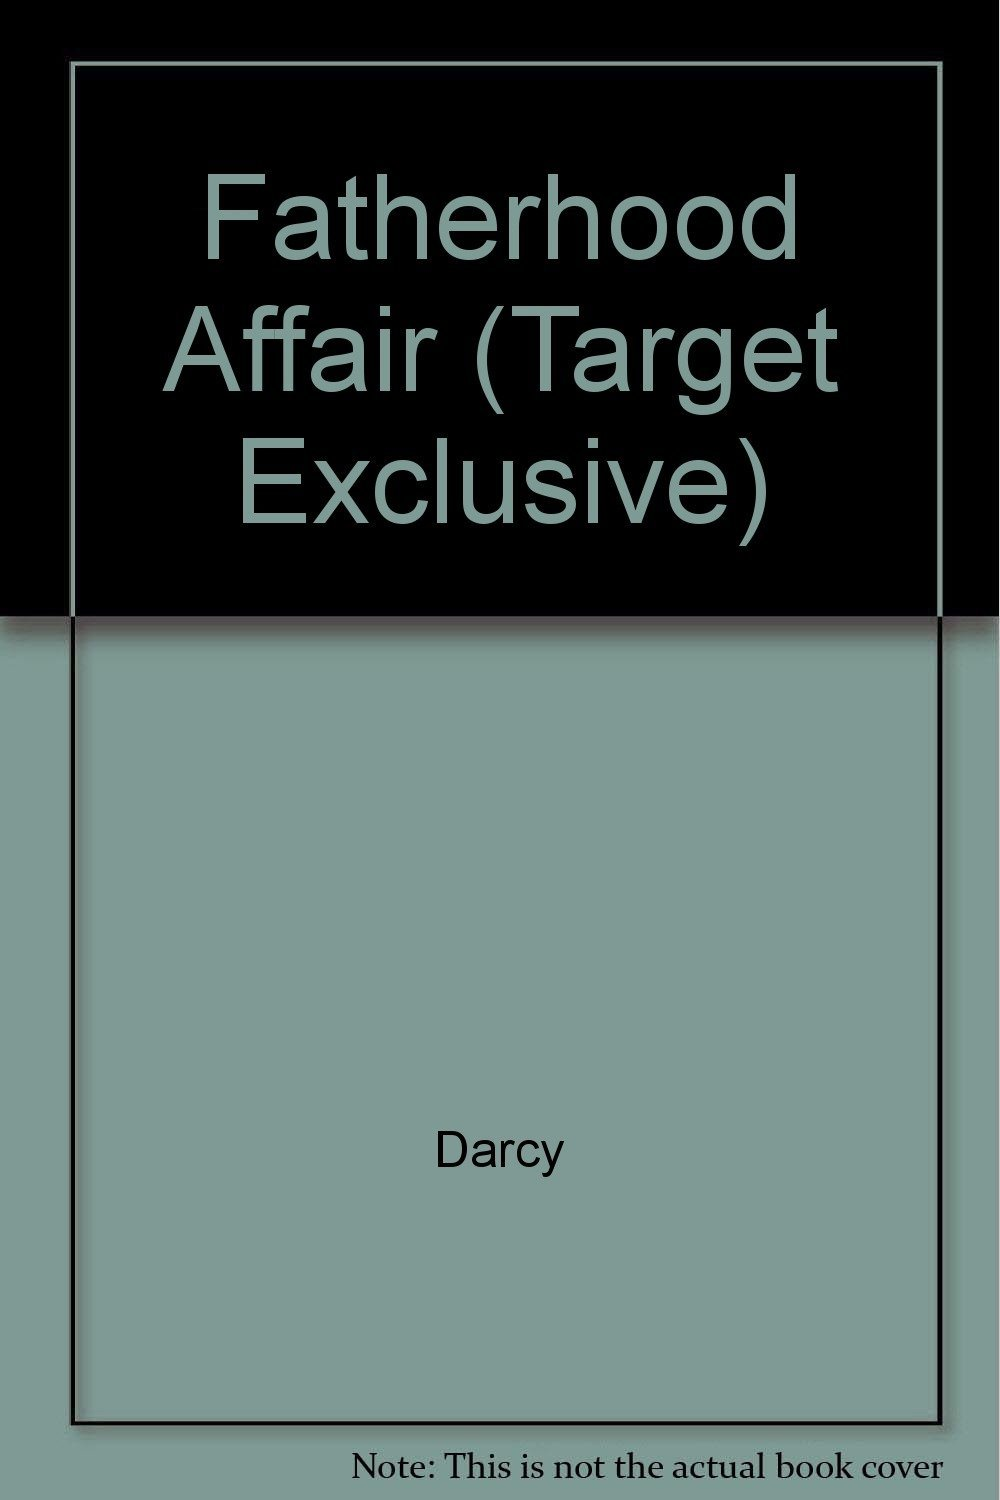 Fatherhood Affair (Target Exclusive) by Darcy